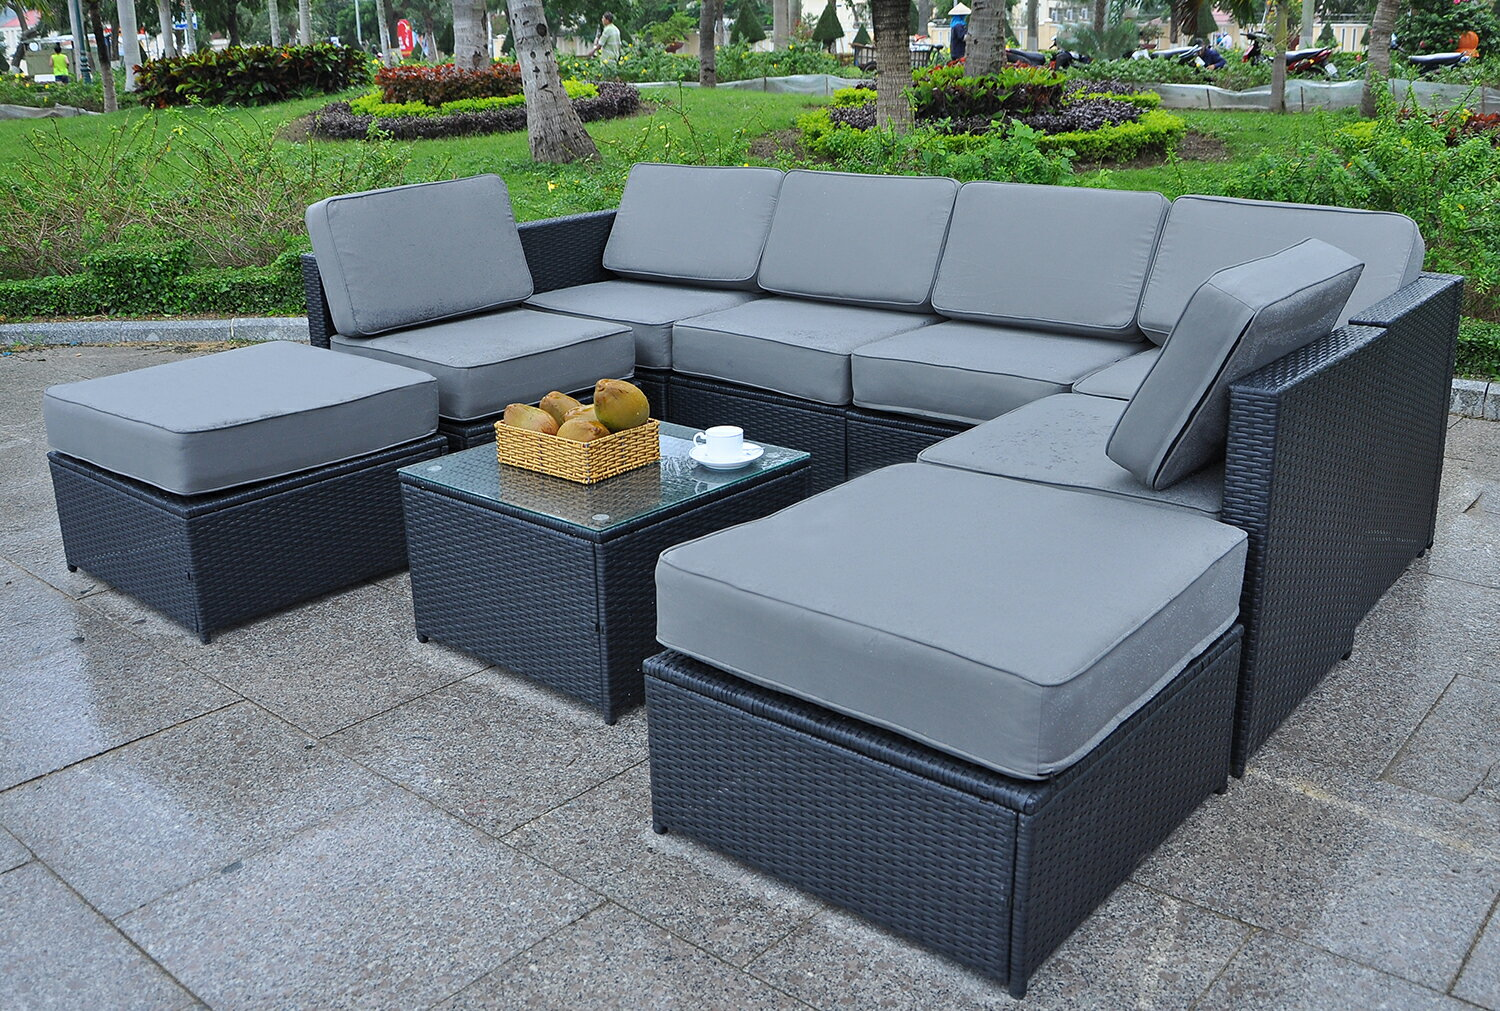 Fine Mcombo 9Pcs Black Wicker White Cushion Patio Sectional Outdoor Sofa Furniture Set 6085 1009Ey Unemploymentrelief Wooden Chair Designs For Living Room Unemploymentrelieforg